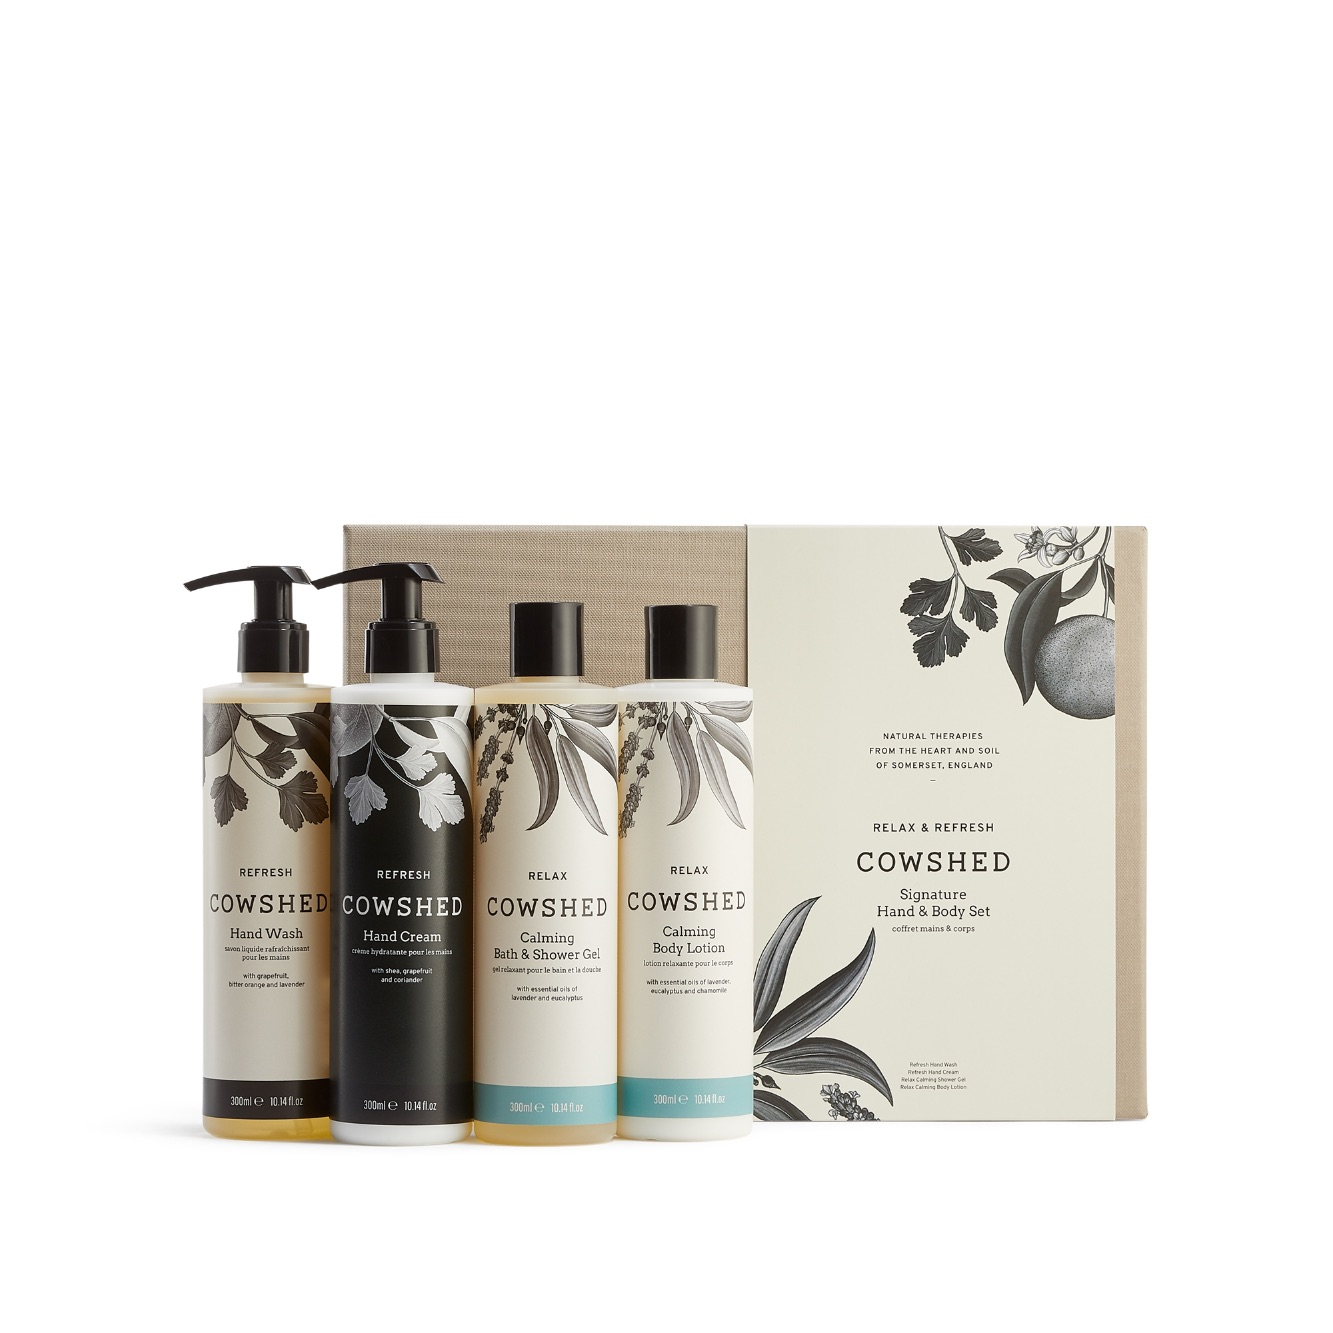 Cowshed Signature Hand & Body Collection Gift Set